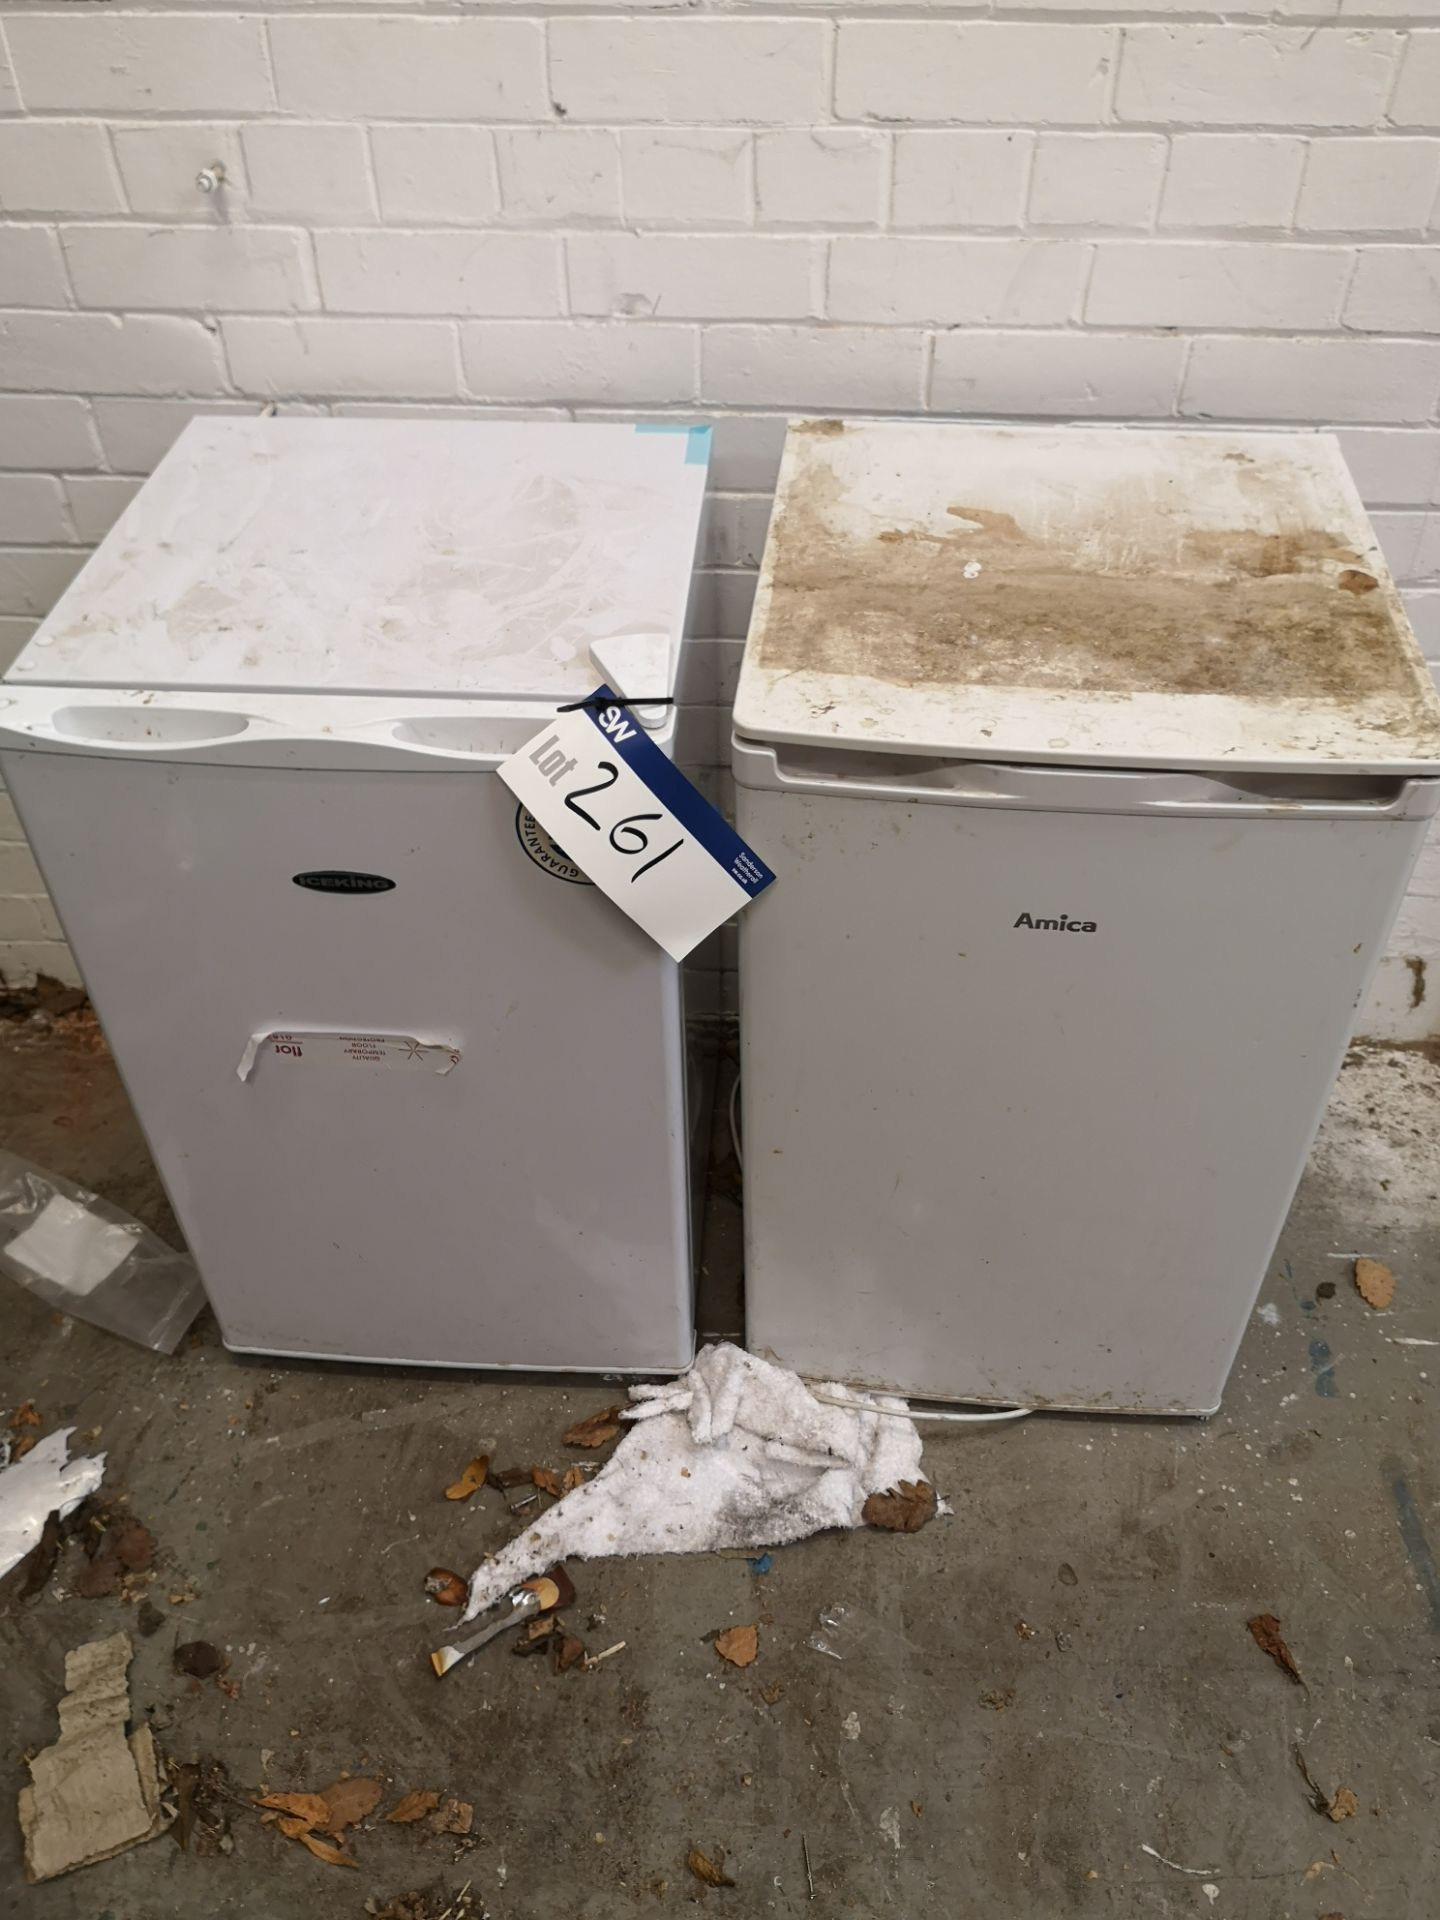 Lot 261 - Ice King and Amica under the counter Refrigerators